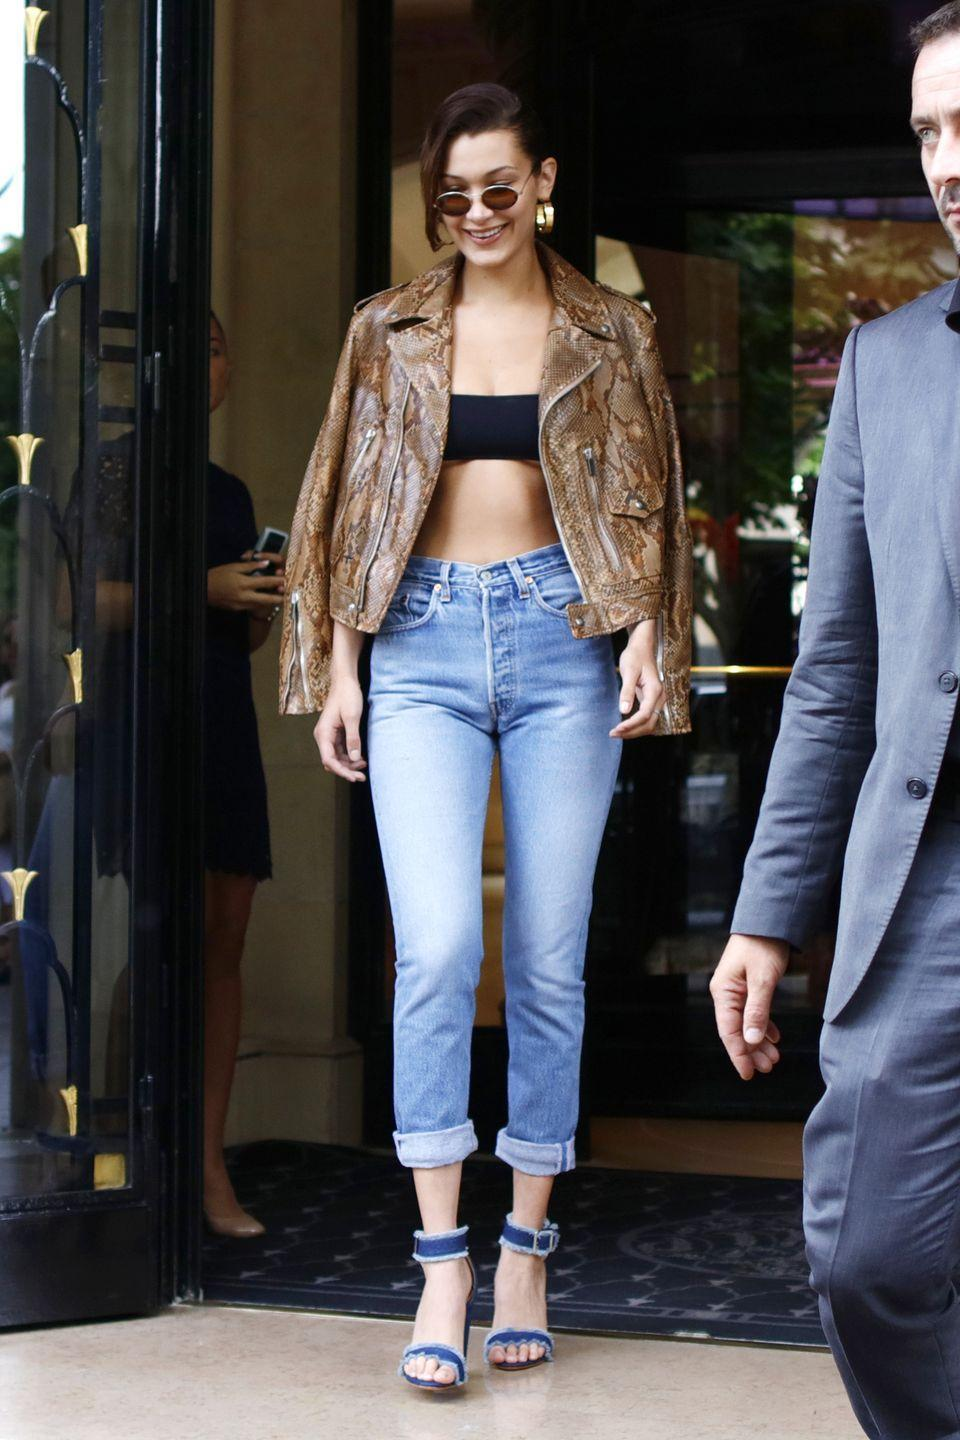 <p>In a snakeskin jacket, Dior black bandeau top, high-waisted jeans, Schutz denim sandals and Robert & Fraud sunglasses while out in Paris. </p>